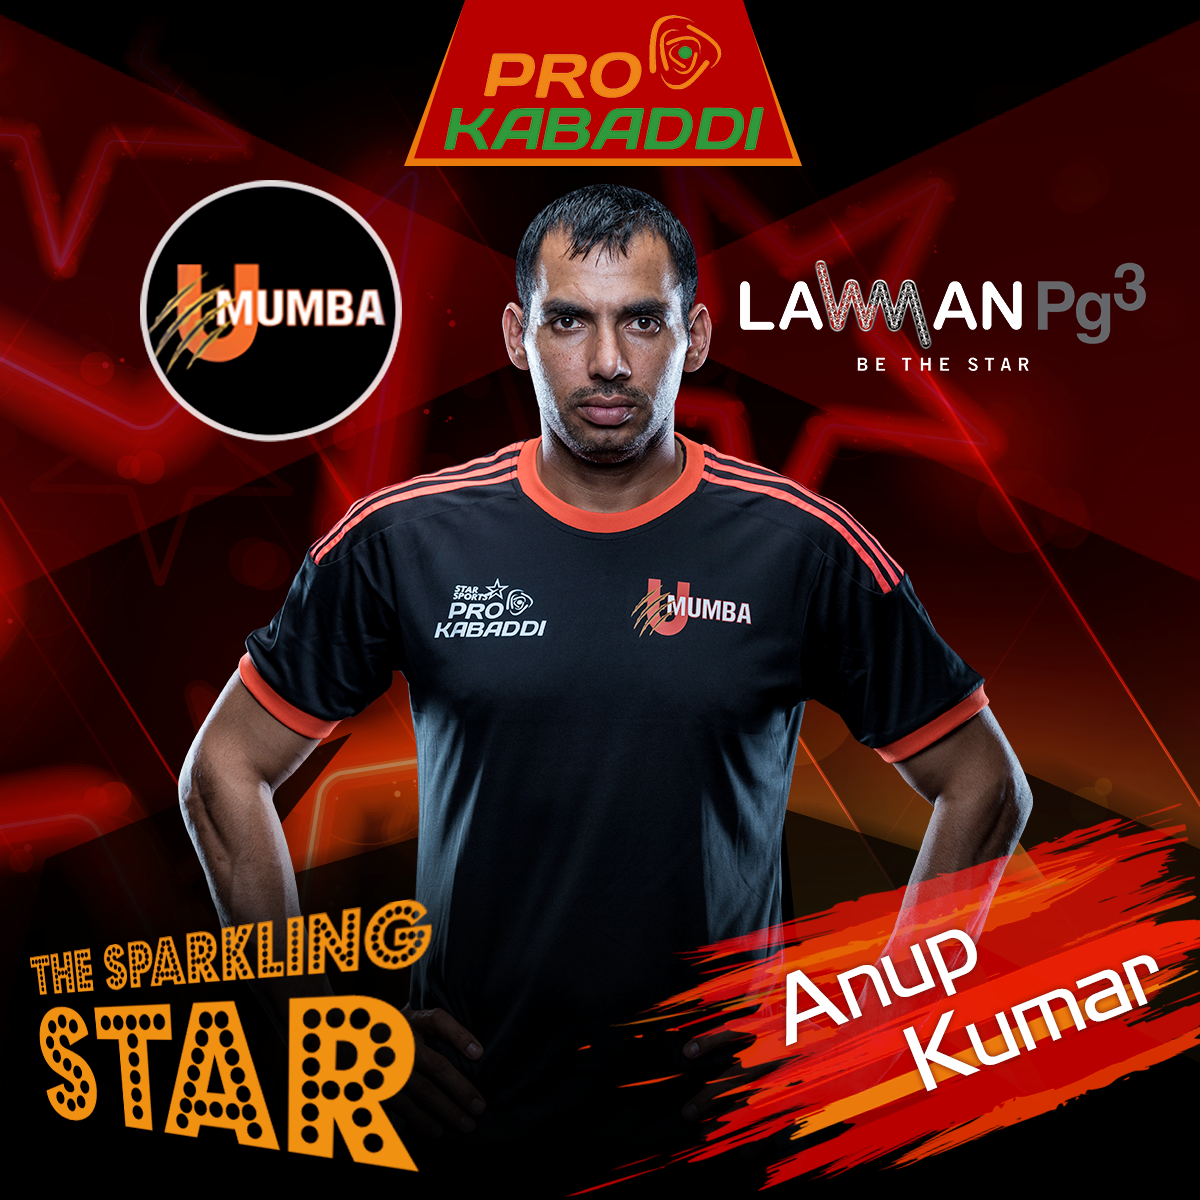 After yesterdays match we are certain of anup kumar being the 3db6e6f685405de8c7a9b98eba9280c1g altavistaventures Image collections